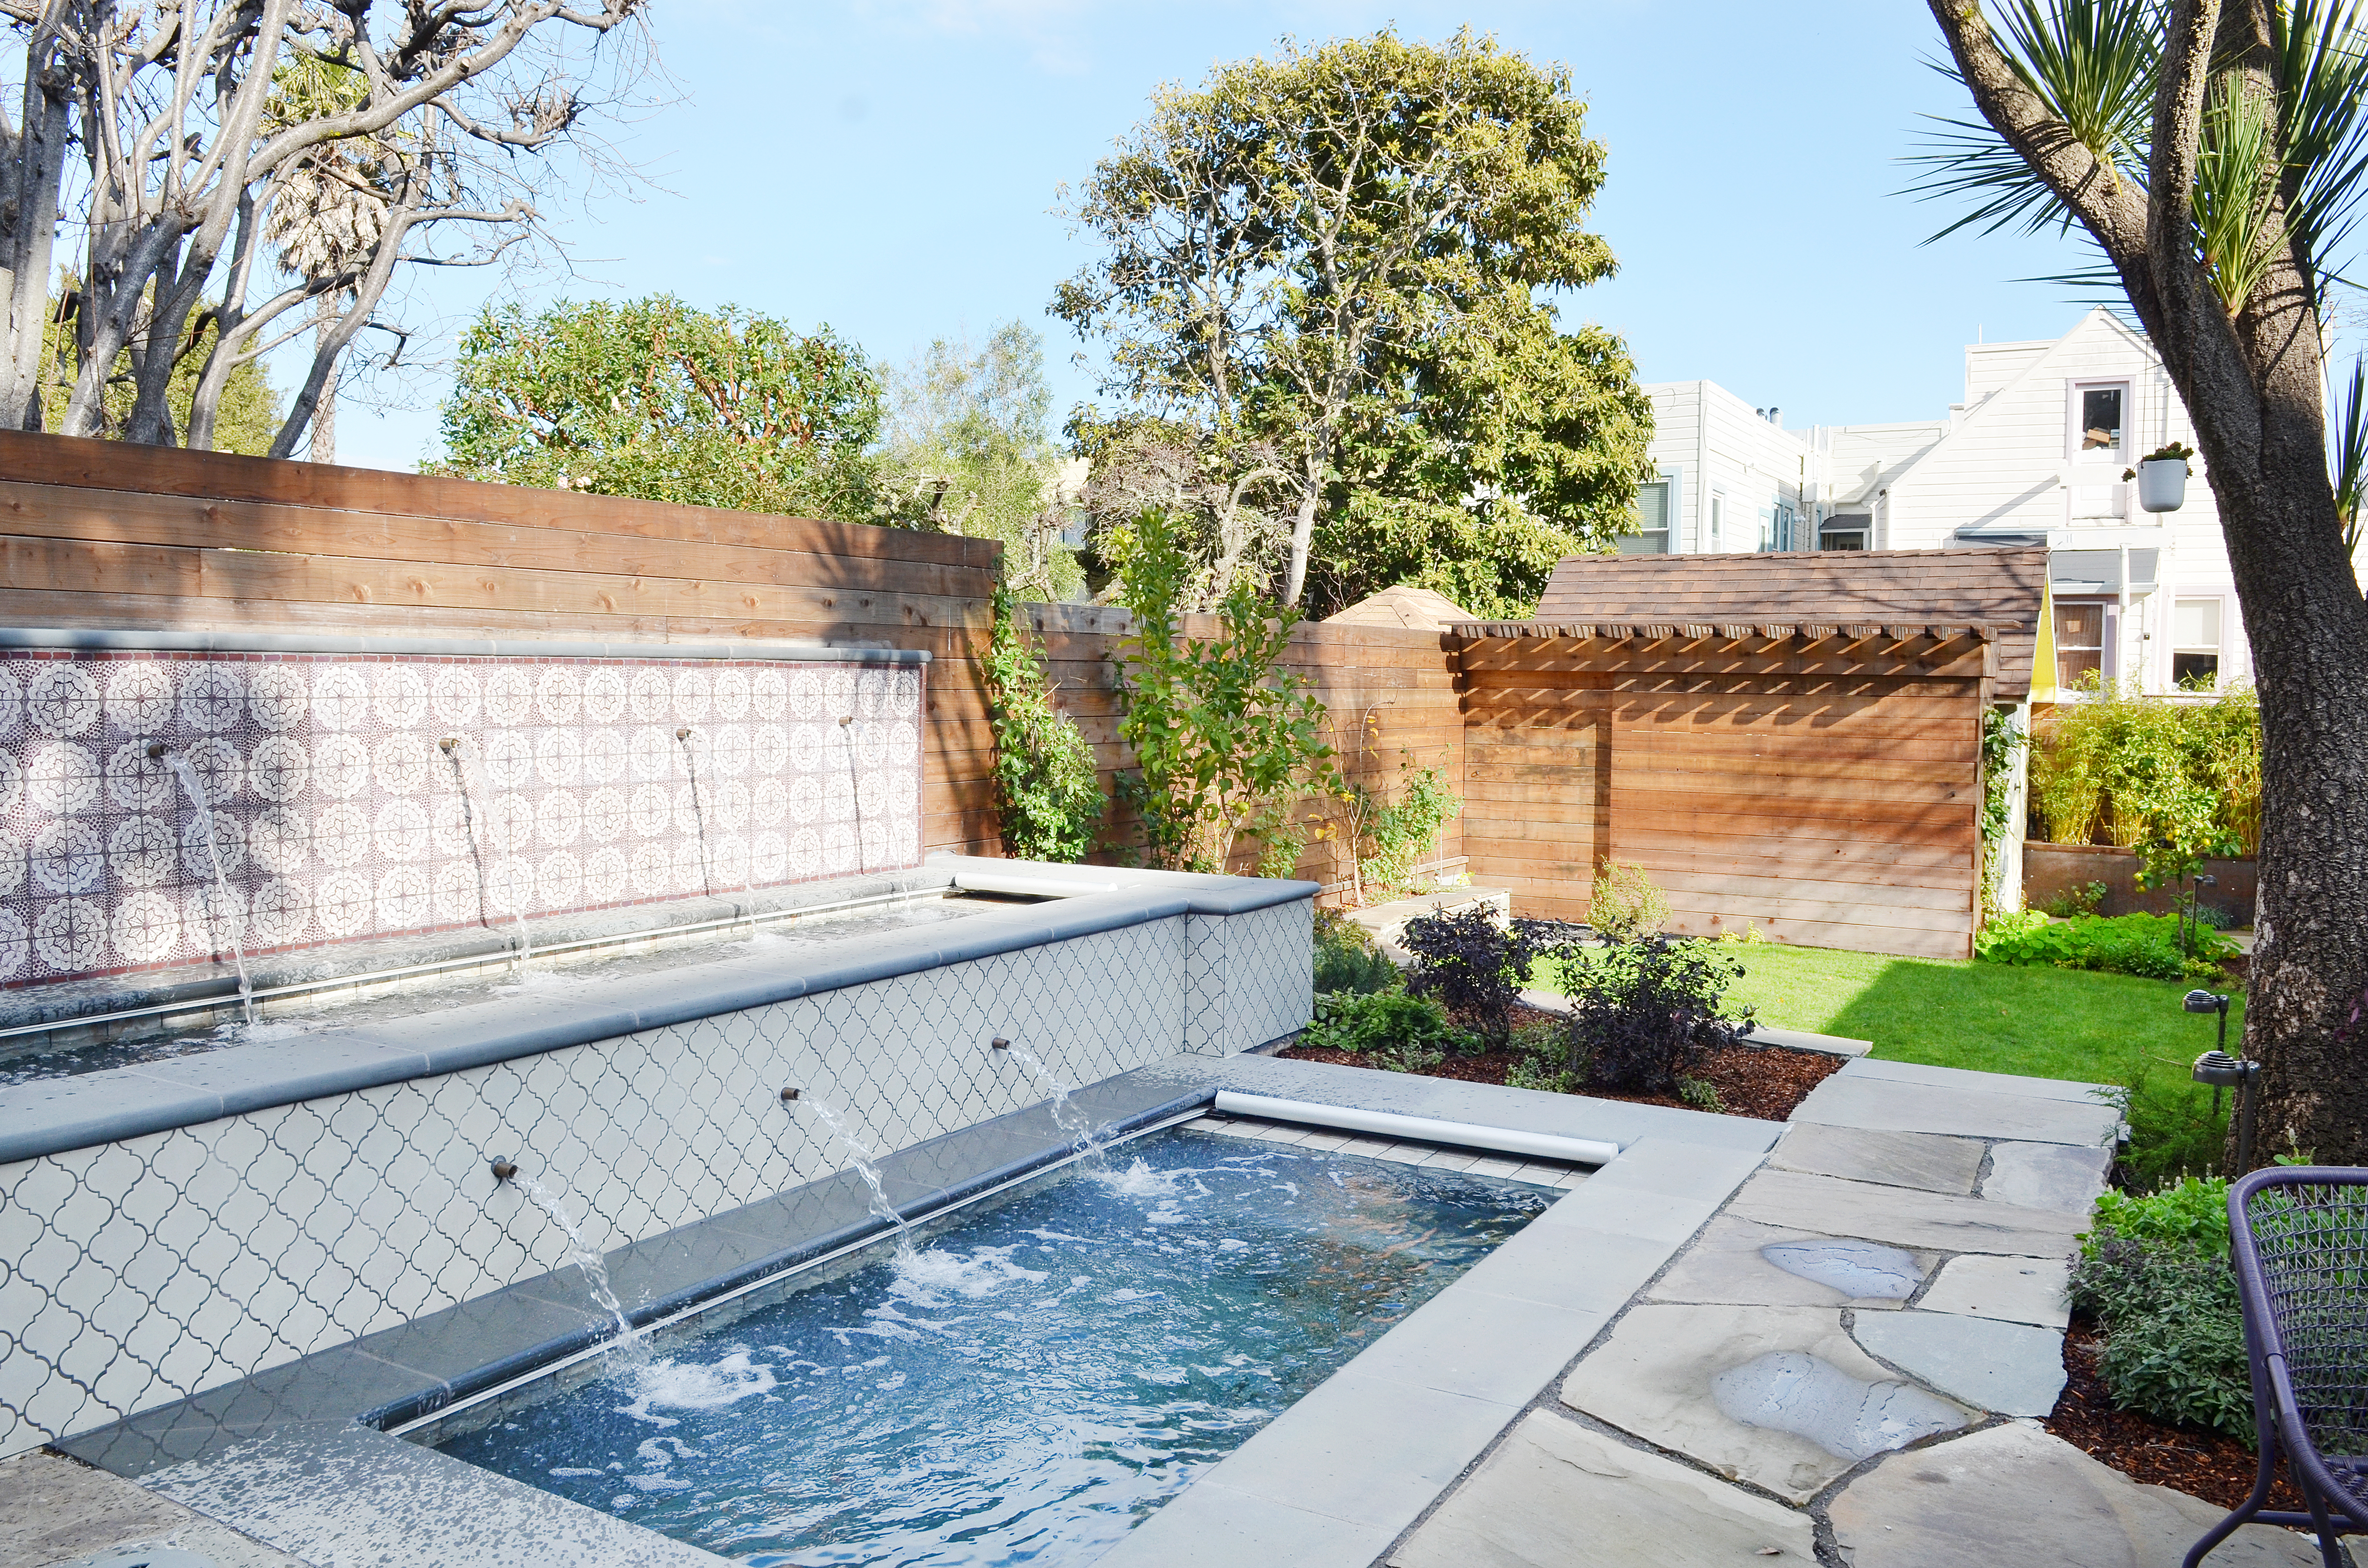 16 Small Backyard Pool Ideas - How to Fit a Pool in a Small Yard